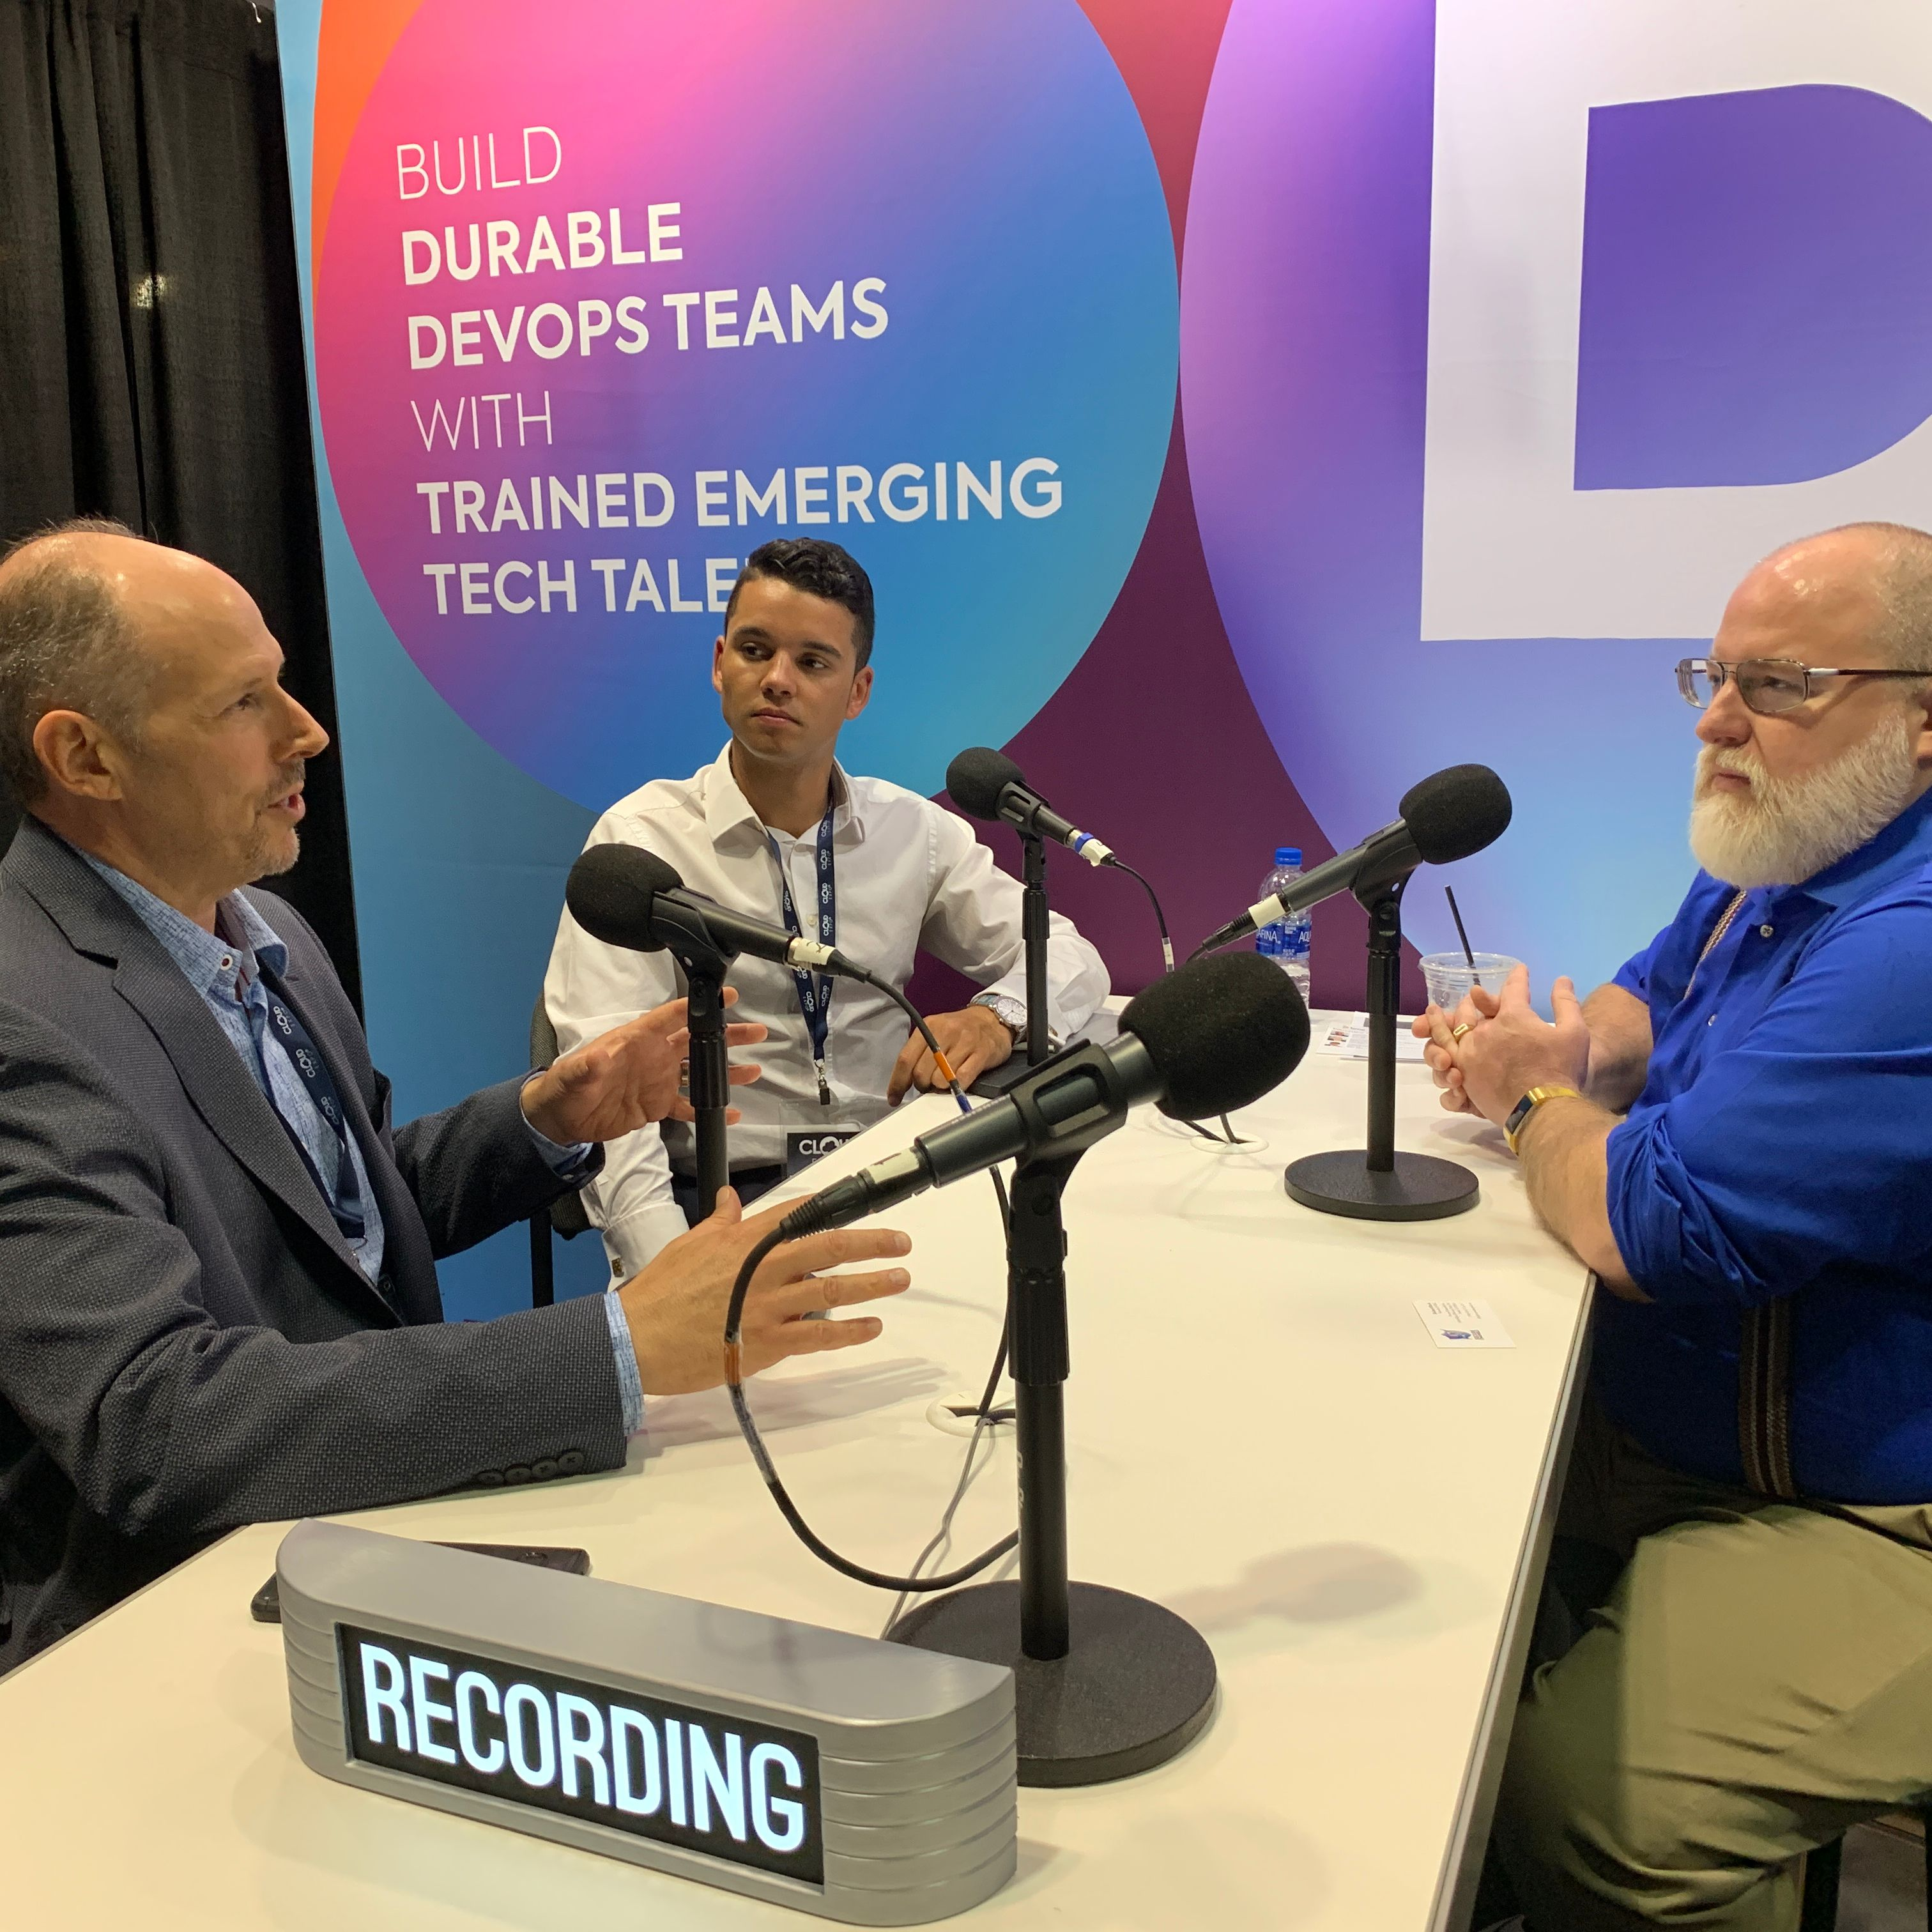 Durable DevOps Podcast Ep. 7 with Richard Blech From Secure Channels Inc.